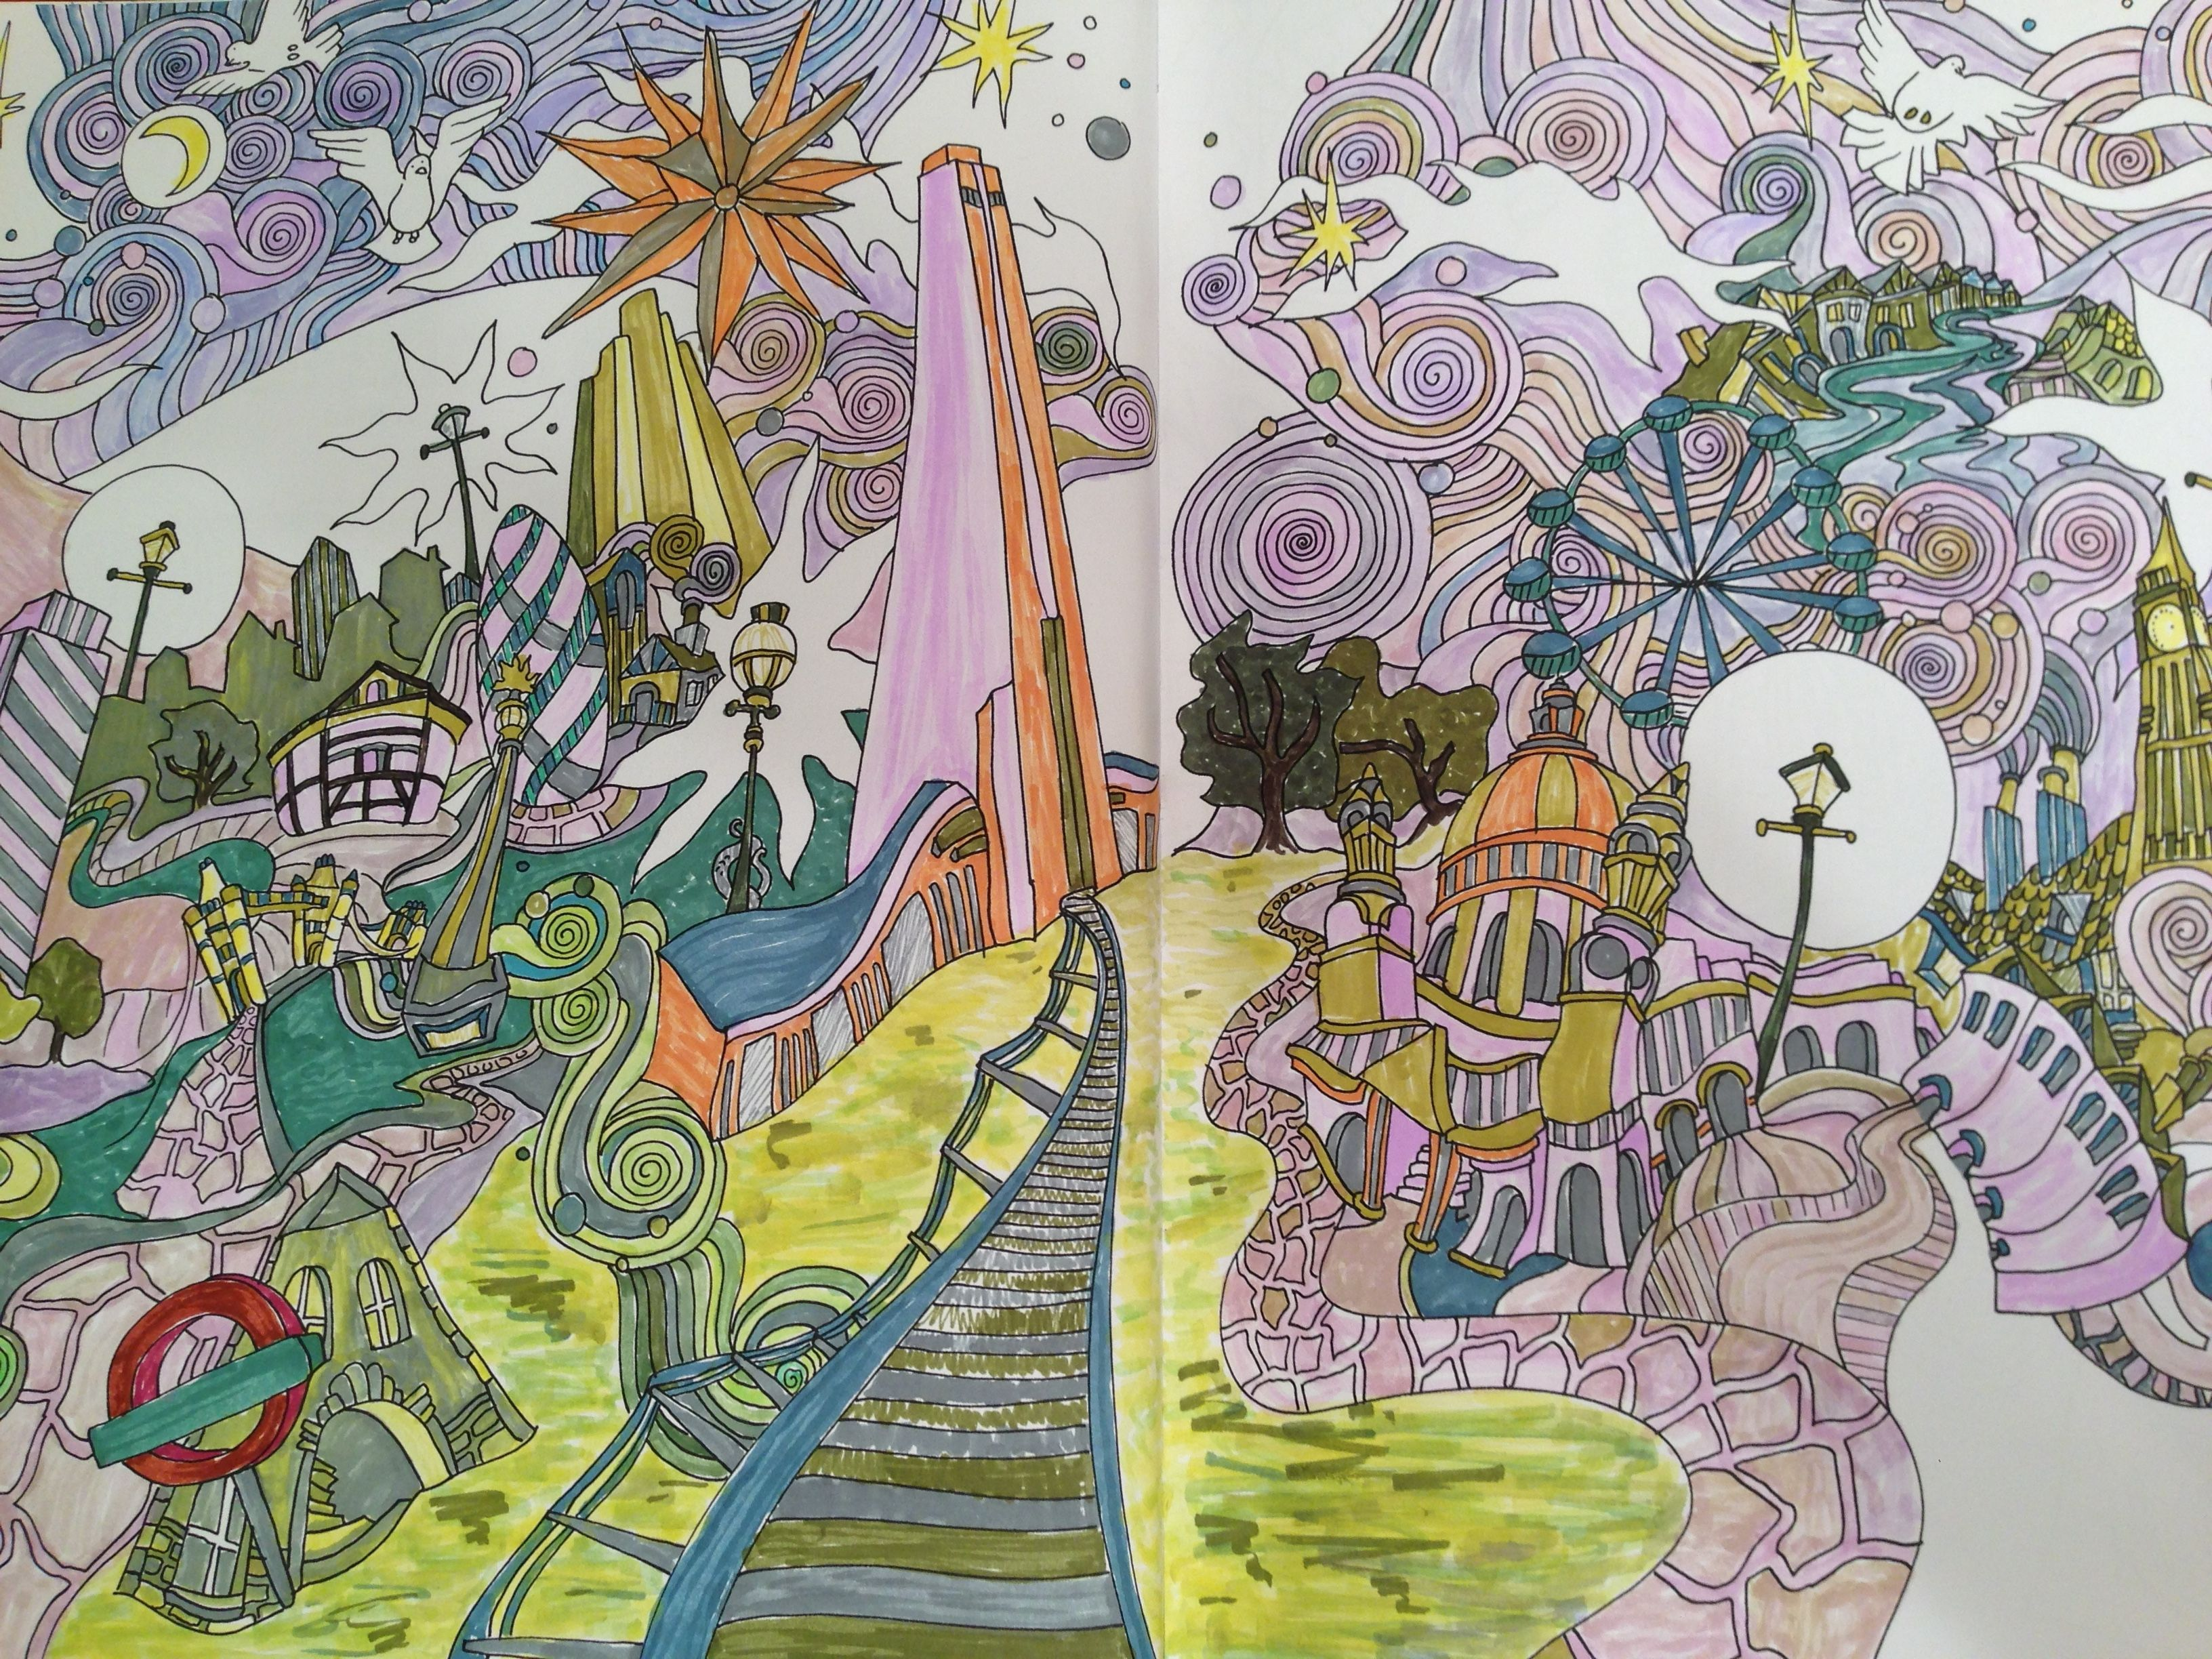 London Panorama From The Magical City Colouring Book By Lizzie Mary Cullen Coloured